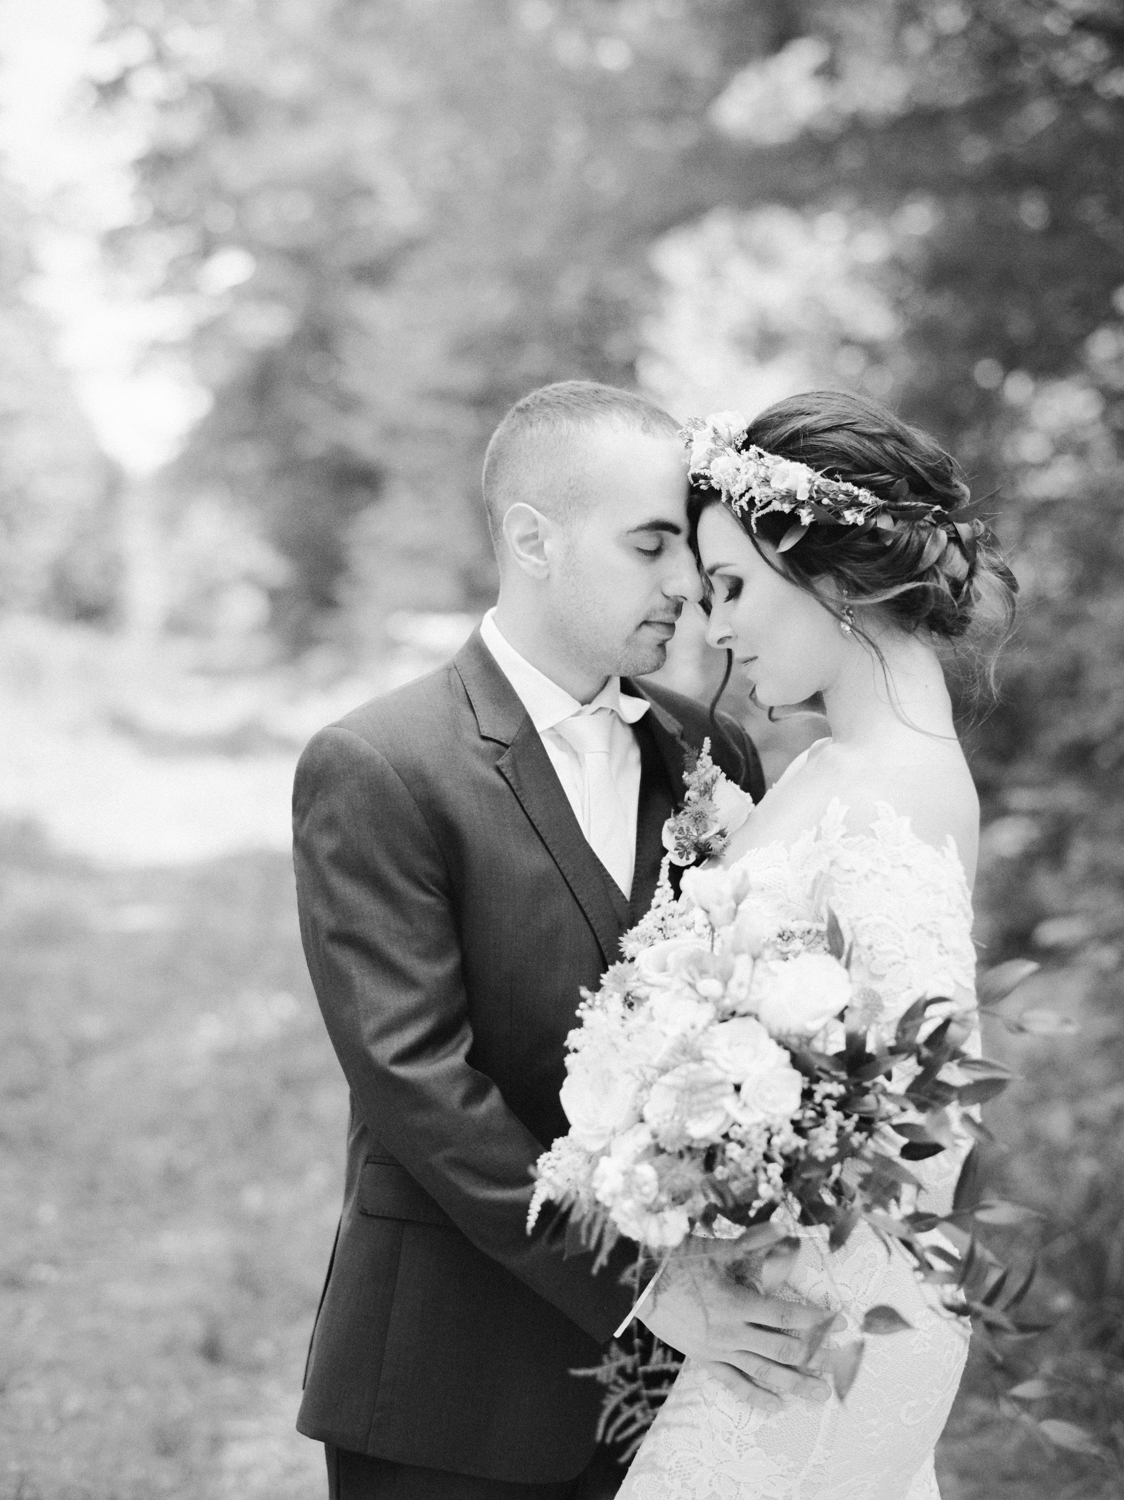 Timeless wedding photography in Amherst MA